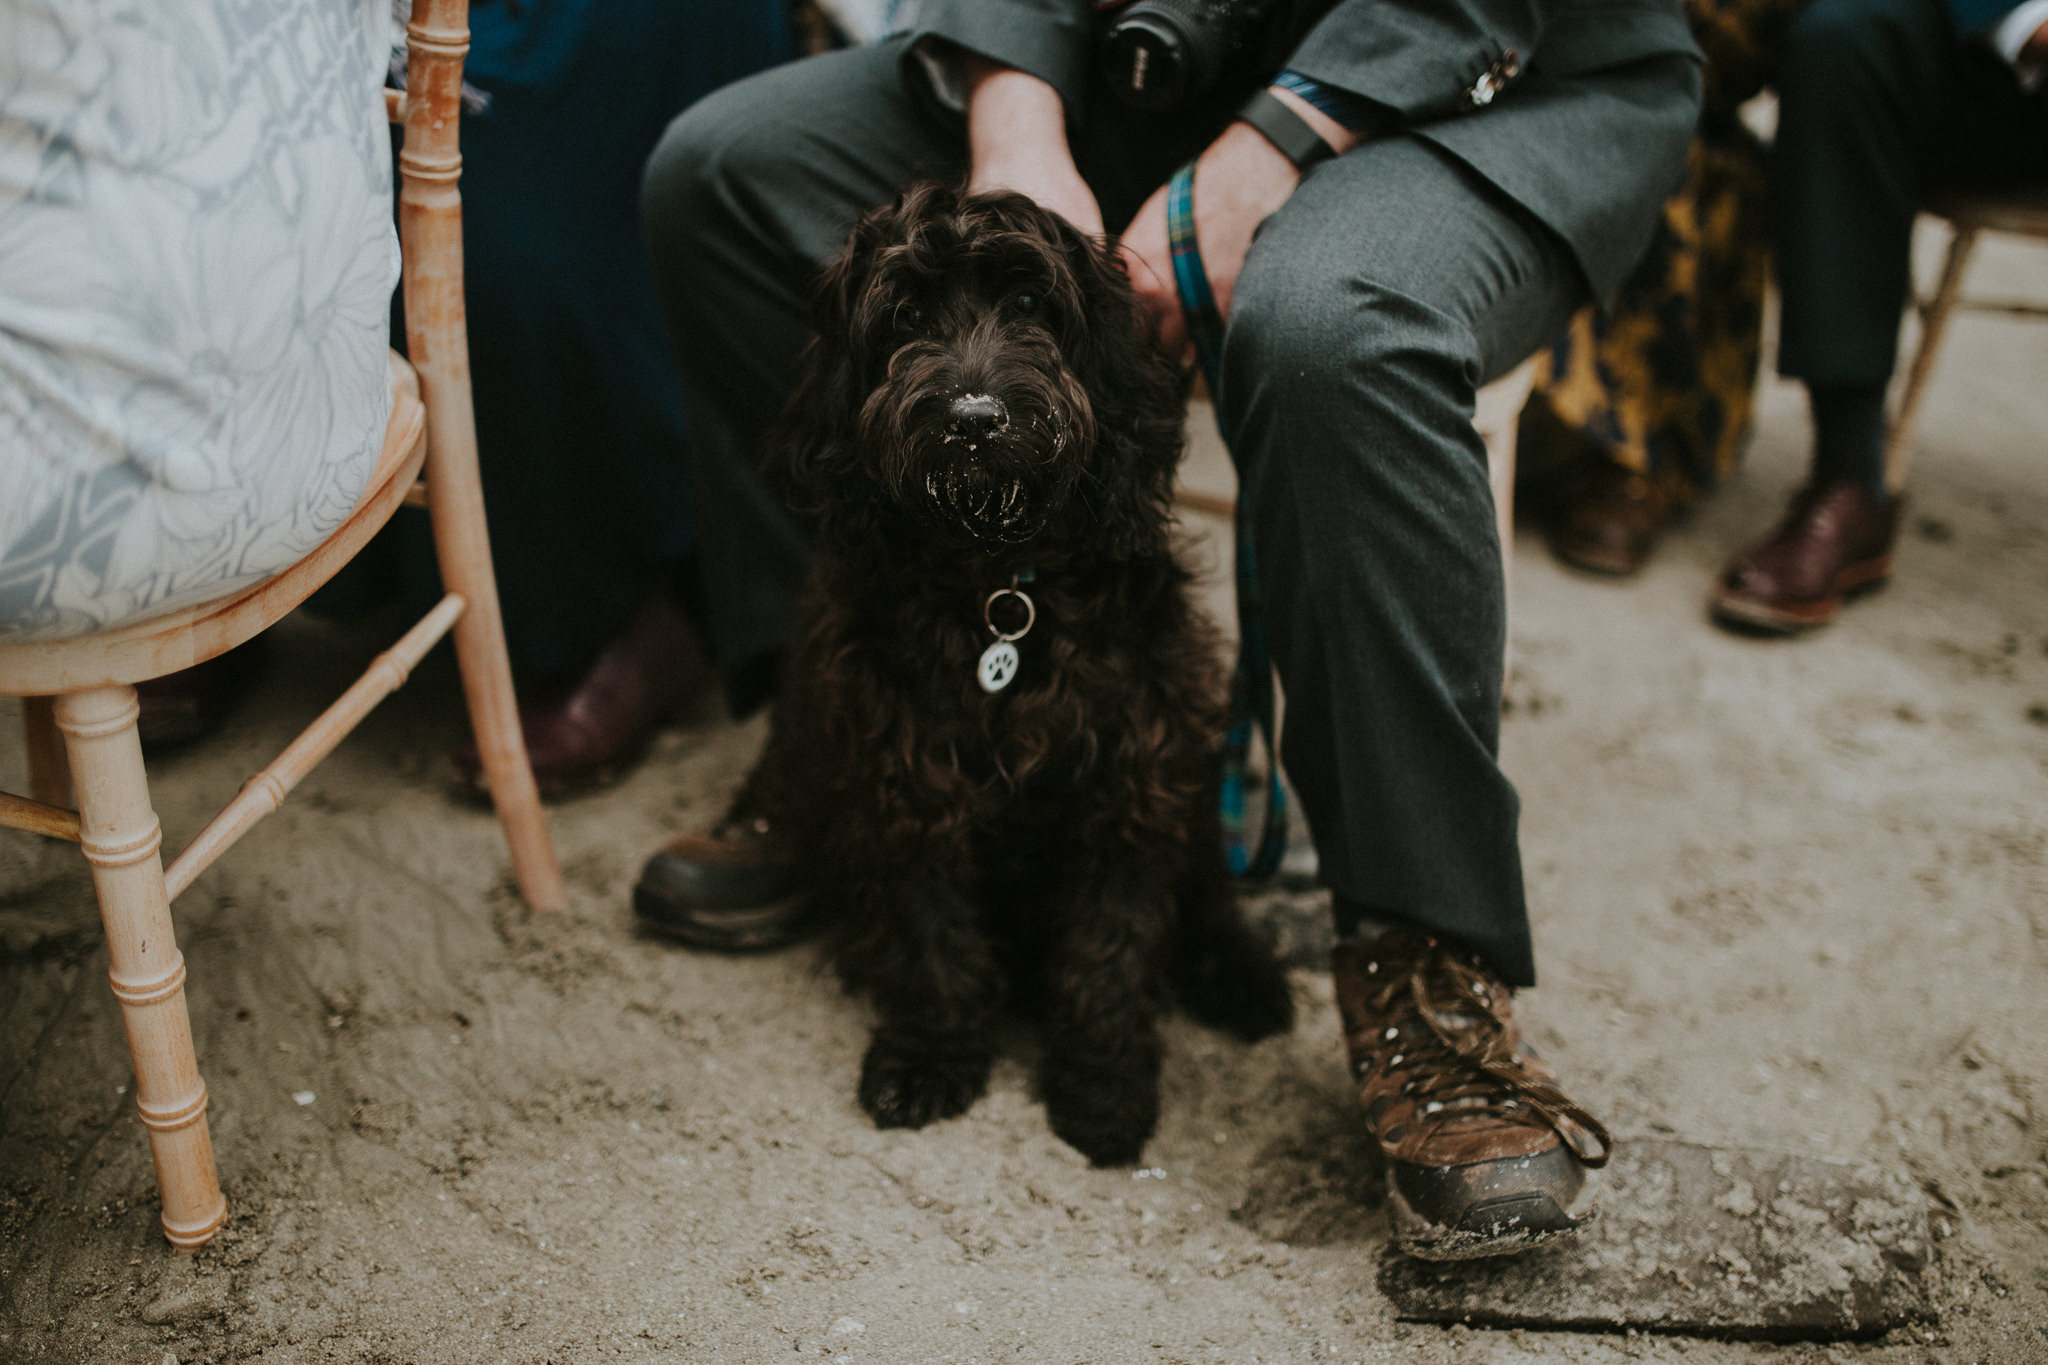 A dog is sitting on the beach in front of a wedding guest.